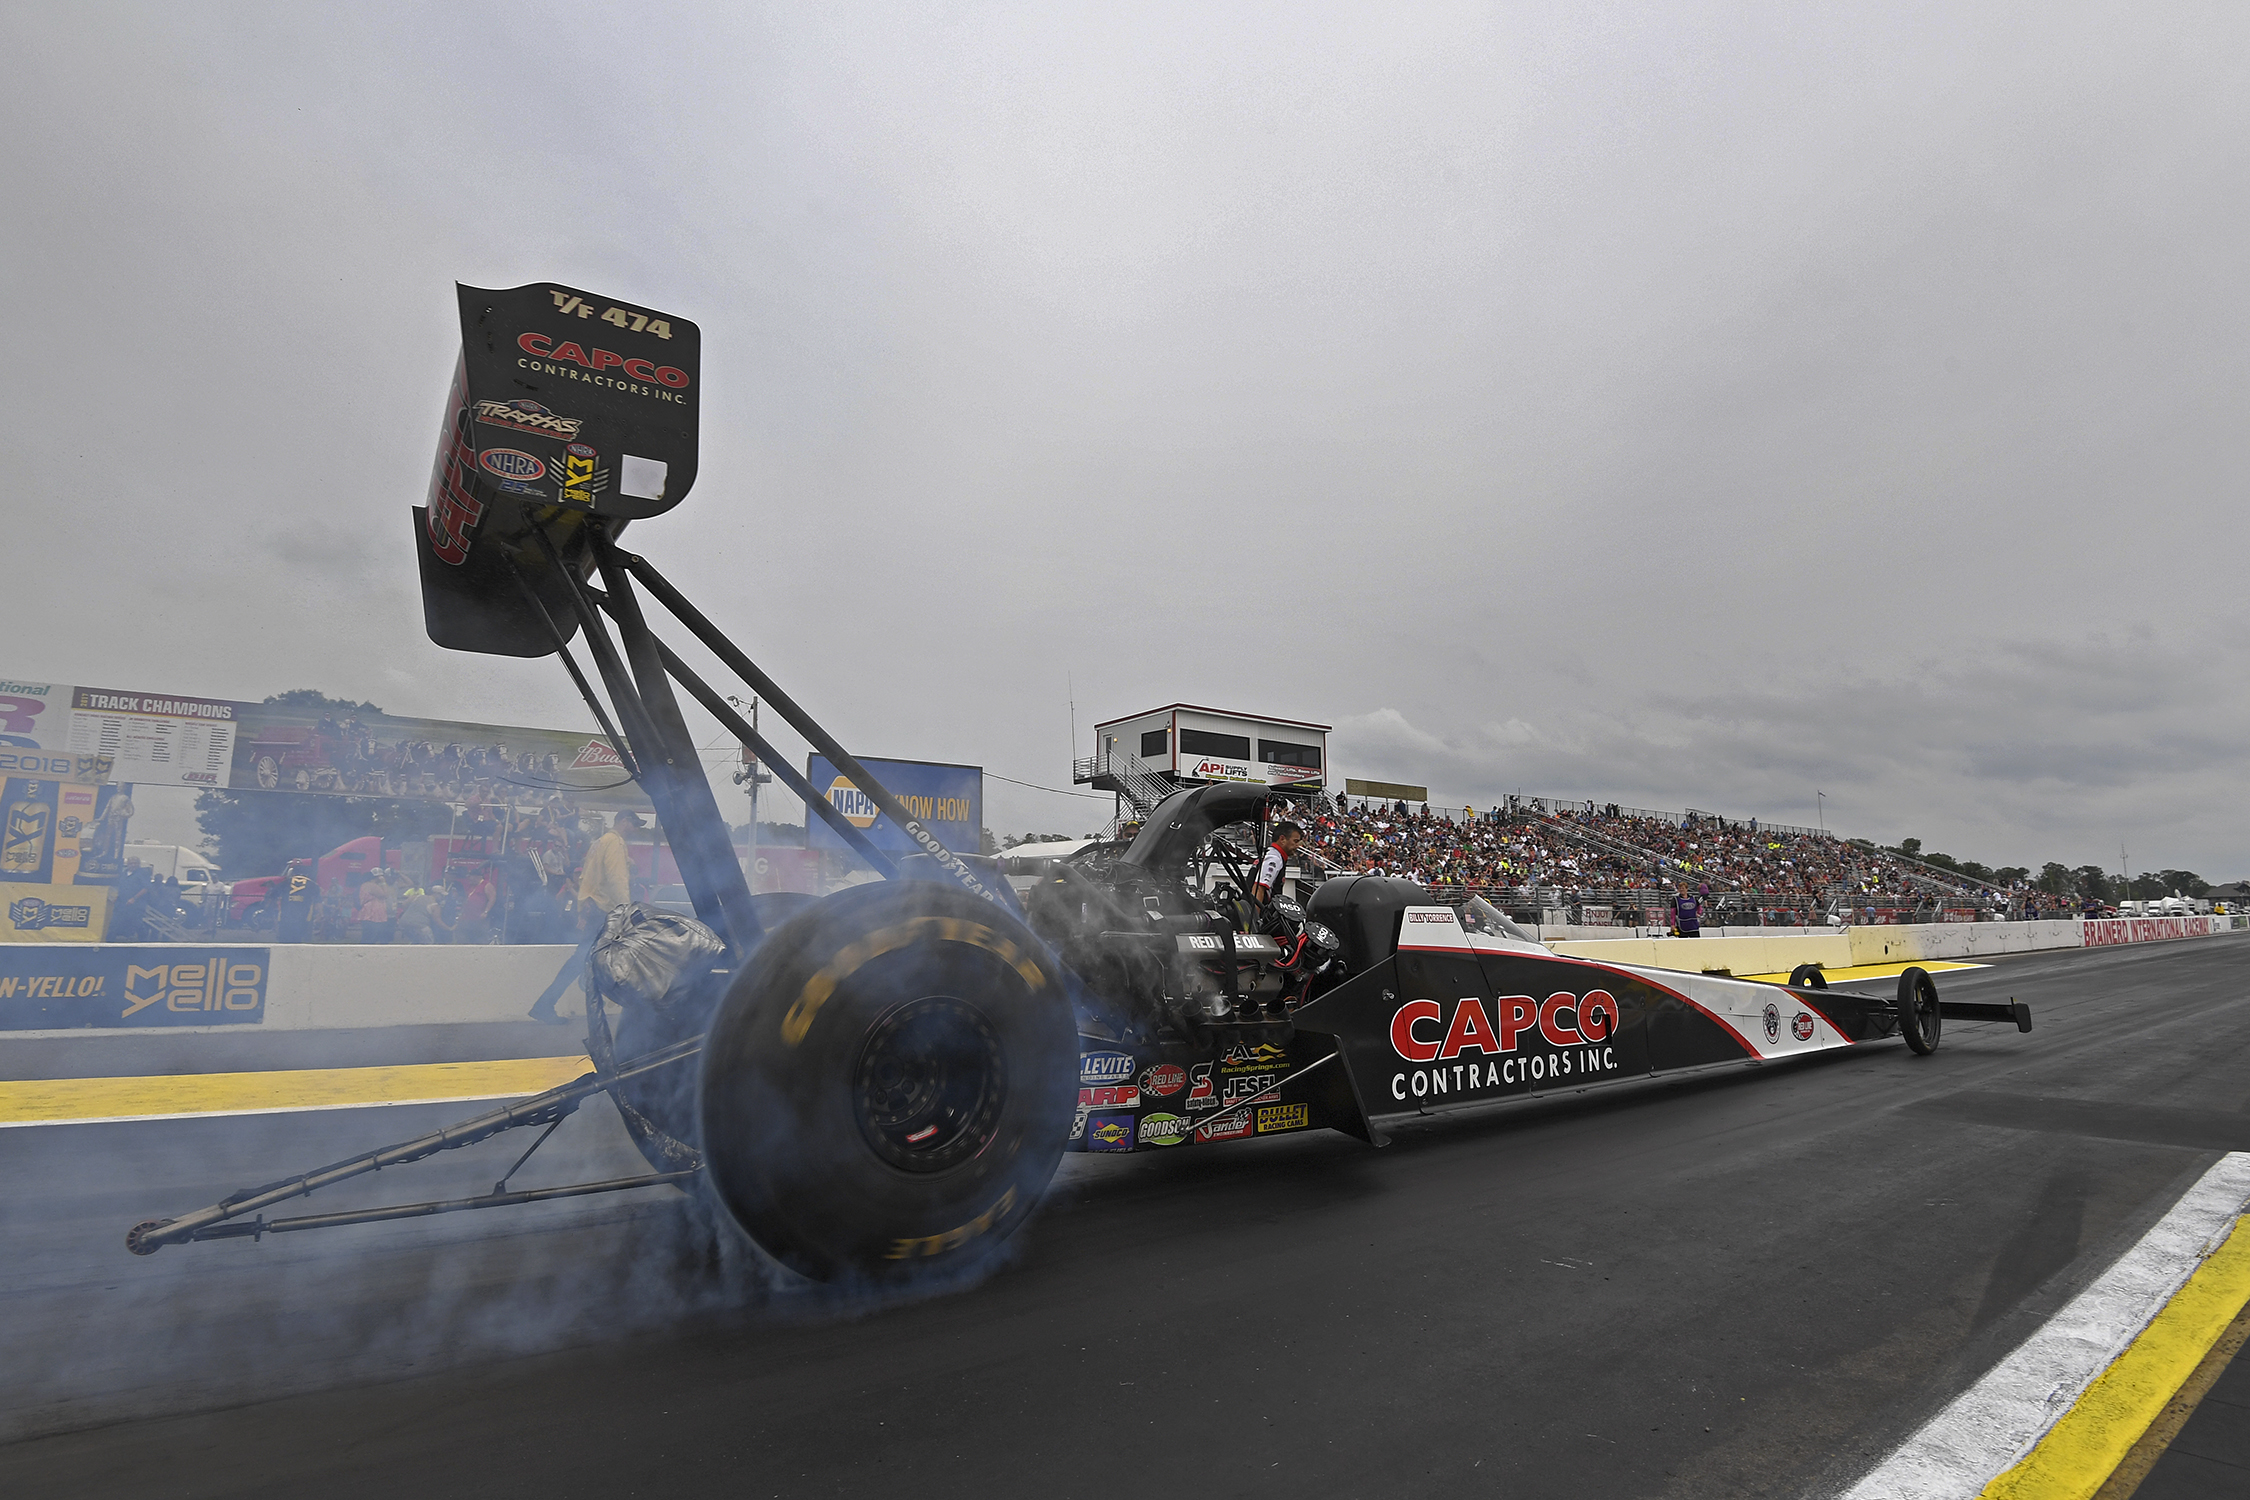 Top Fuel Dragster pilot Billy Torrence racing on Sunday at the 2018 Lucas Oil NHRA Nationals